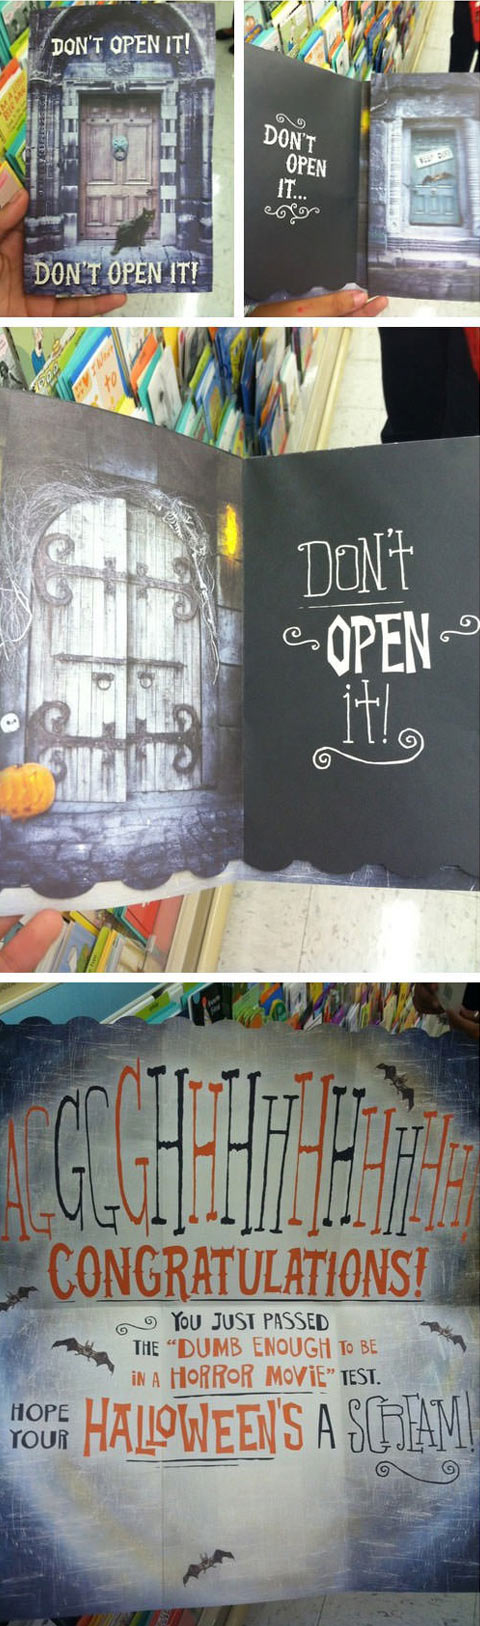 funny-Halloween-gift-card-open